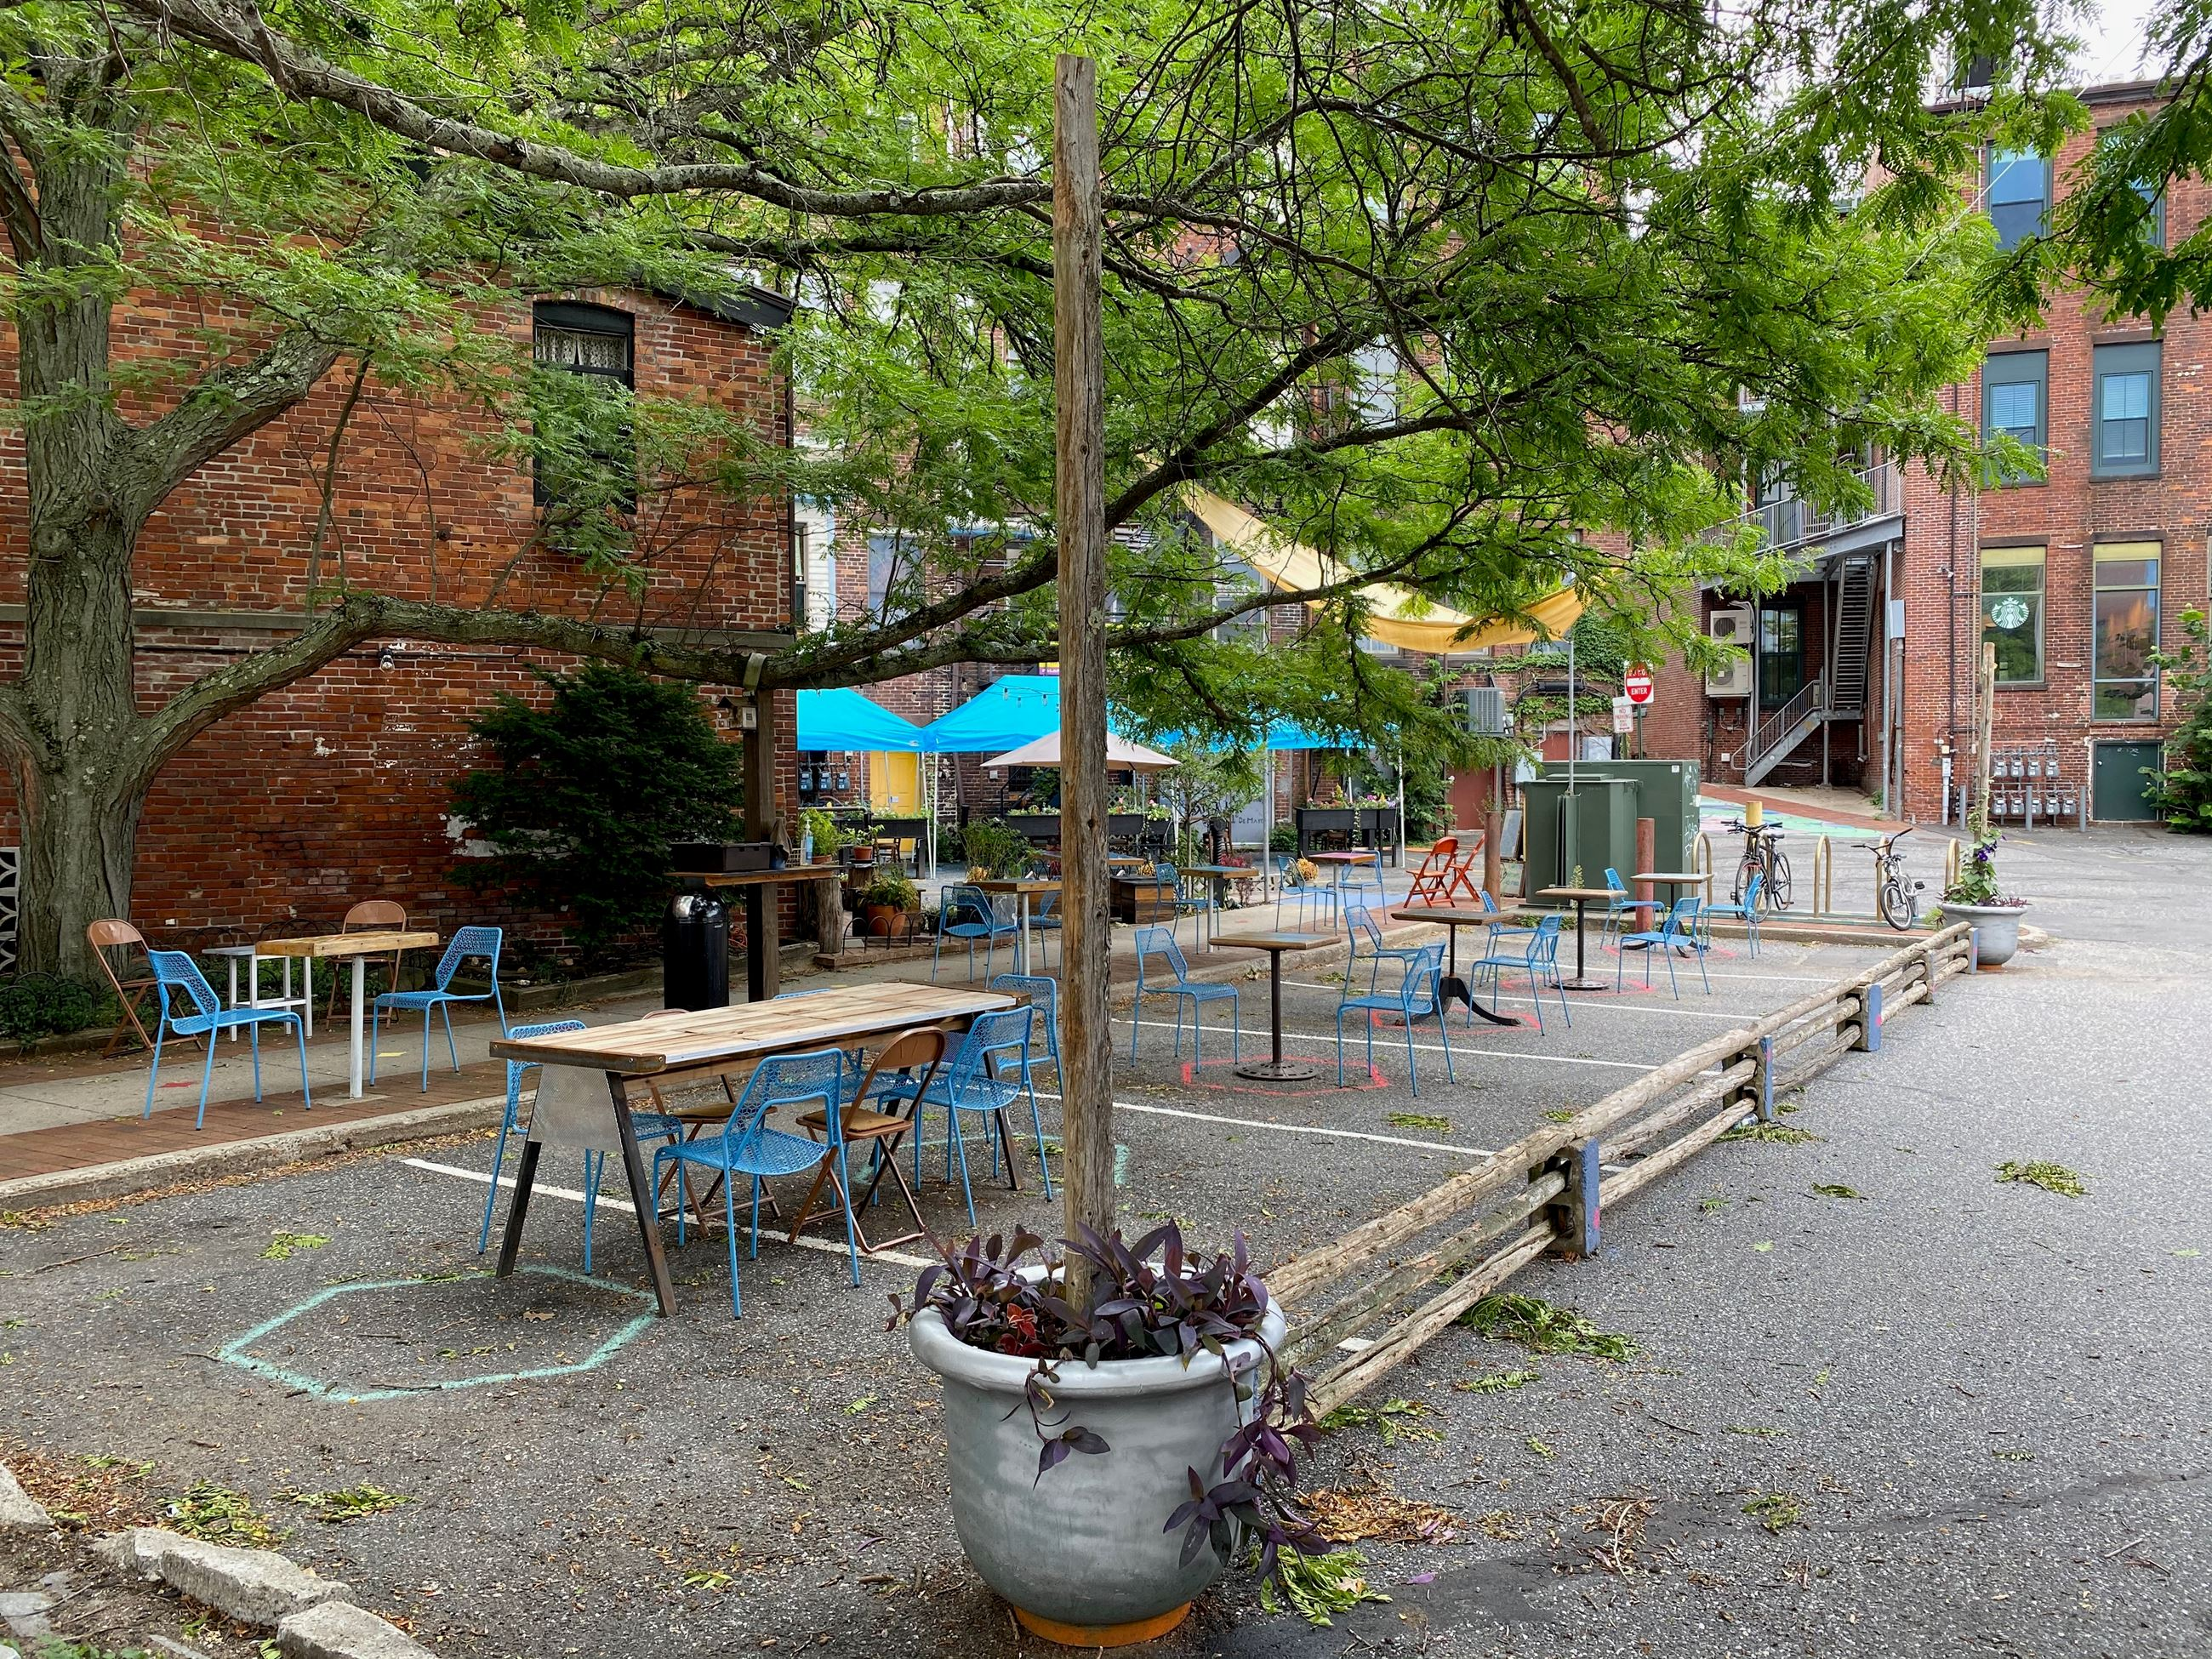 Image of outdoor dining spaces in downtown Northampton